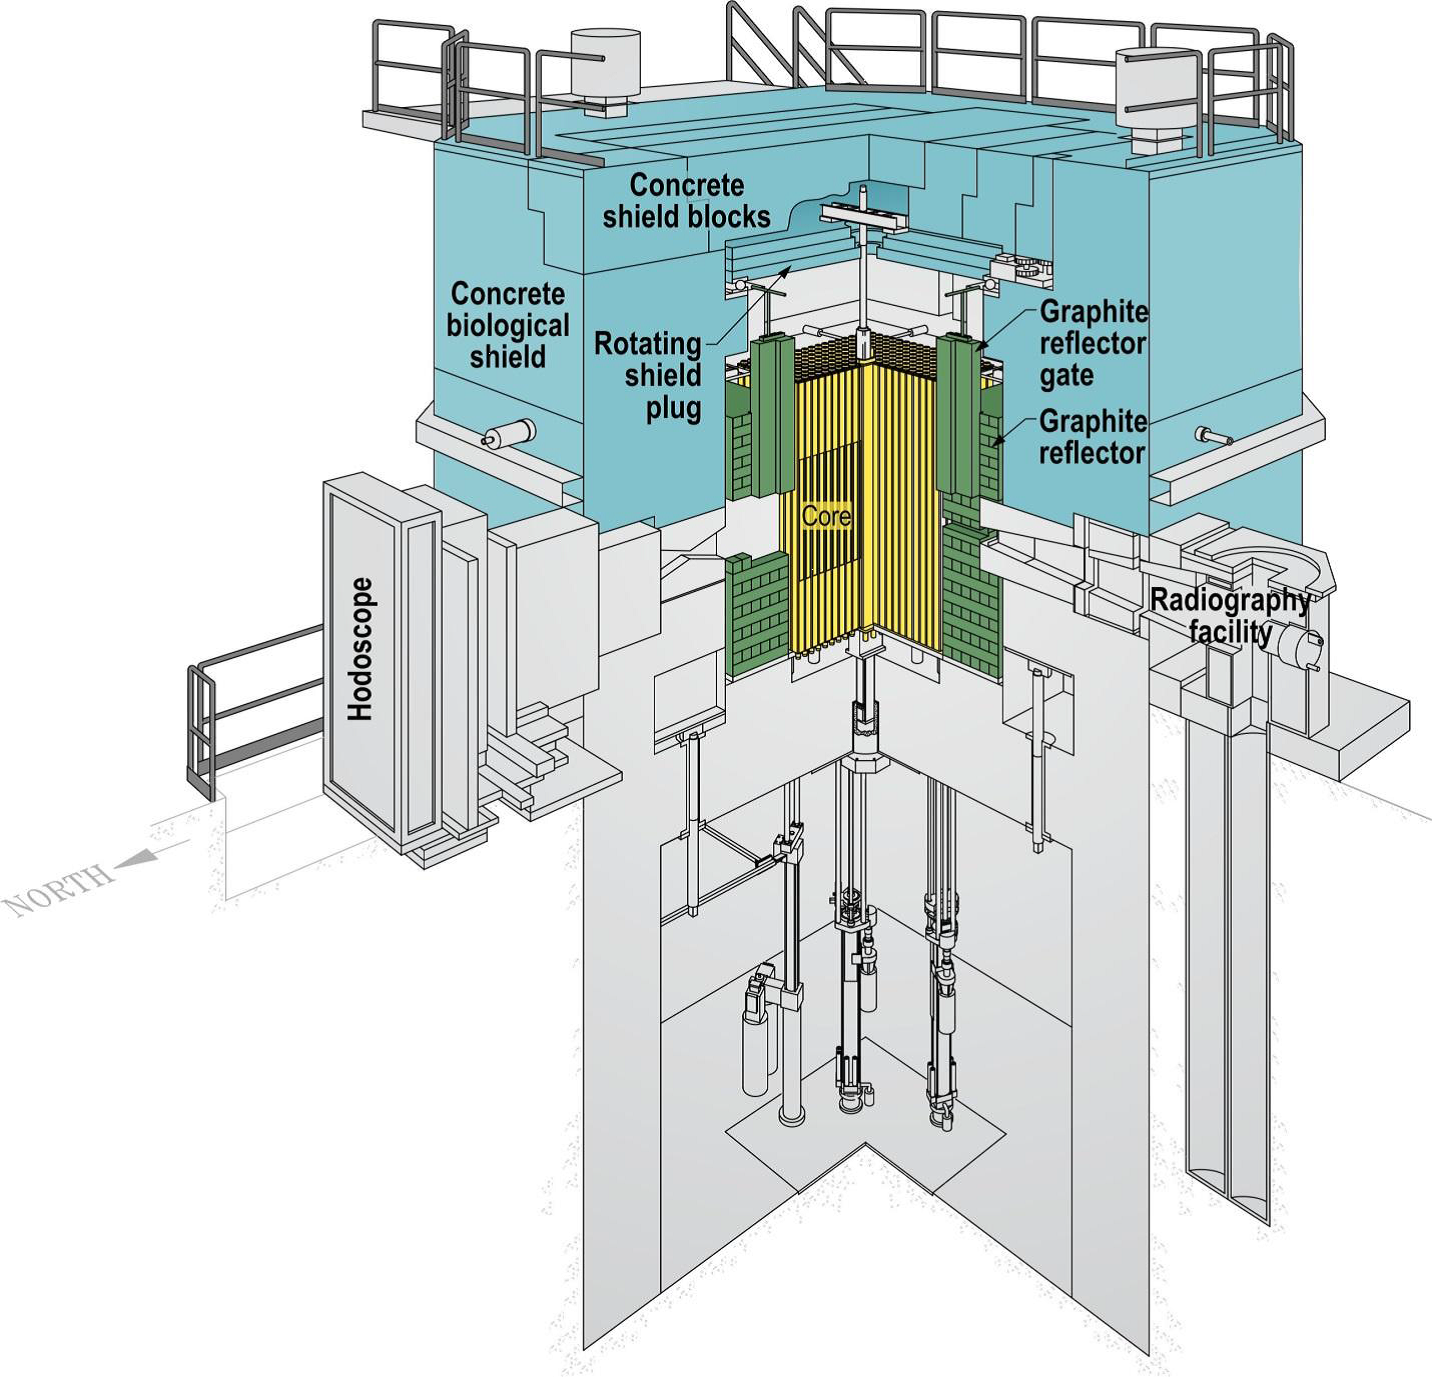 Transient Reactor Test Facility (TREAT)